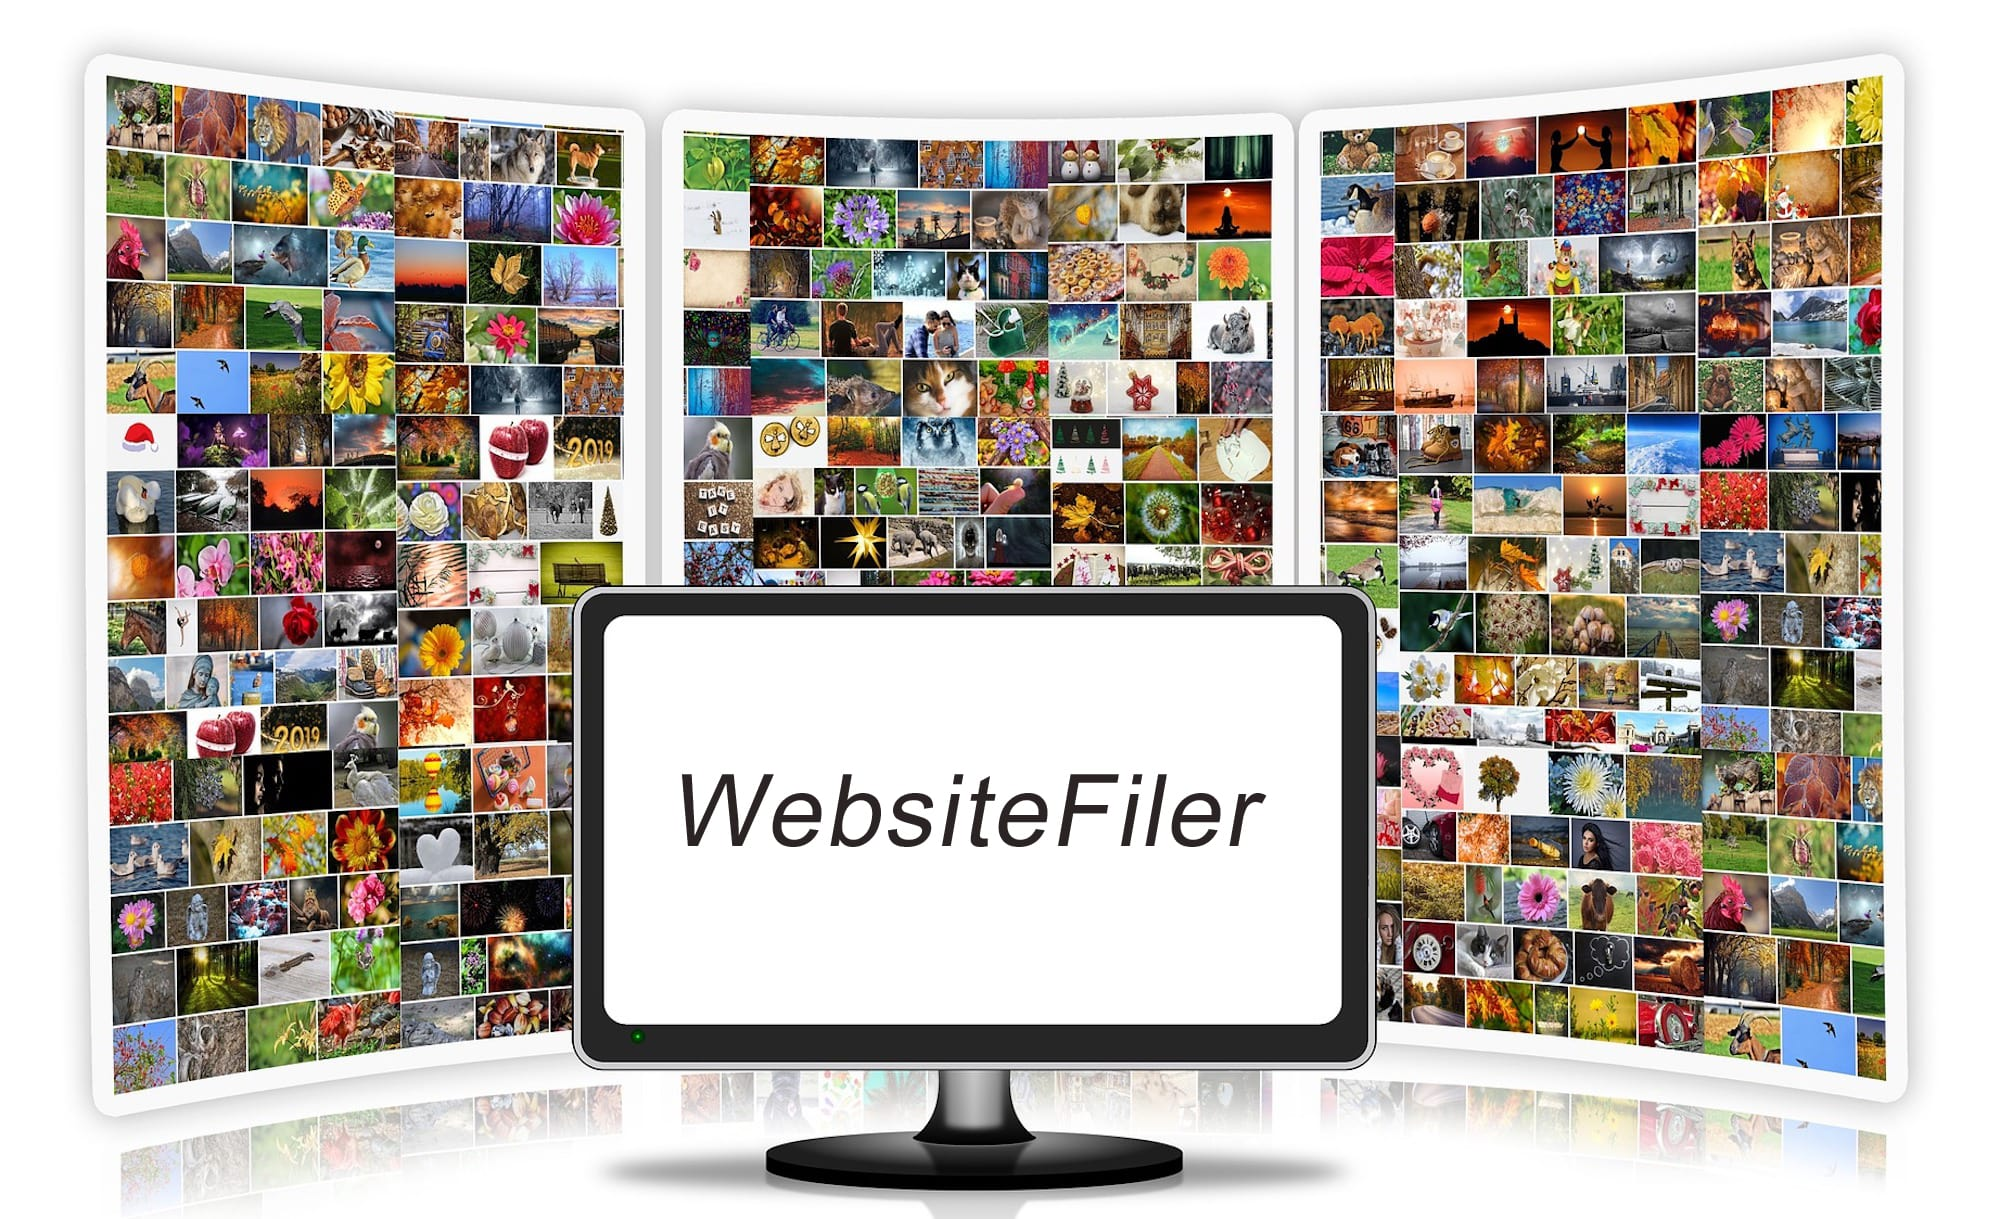 Website Filer Audit